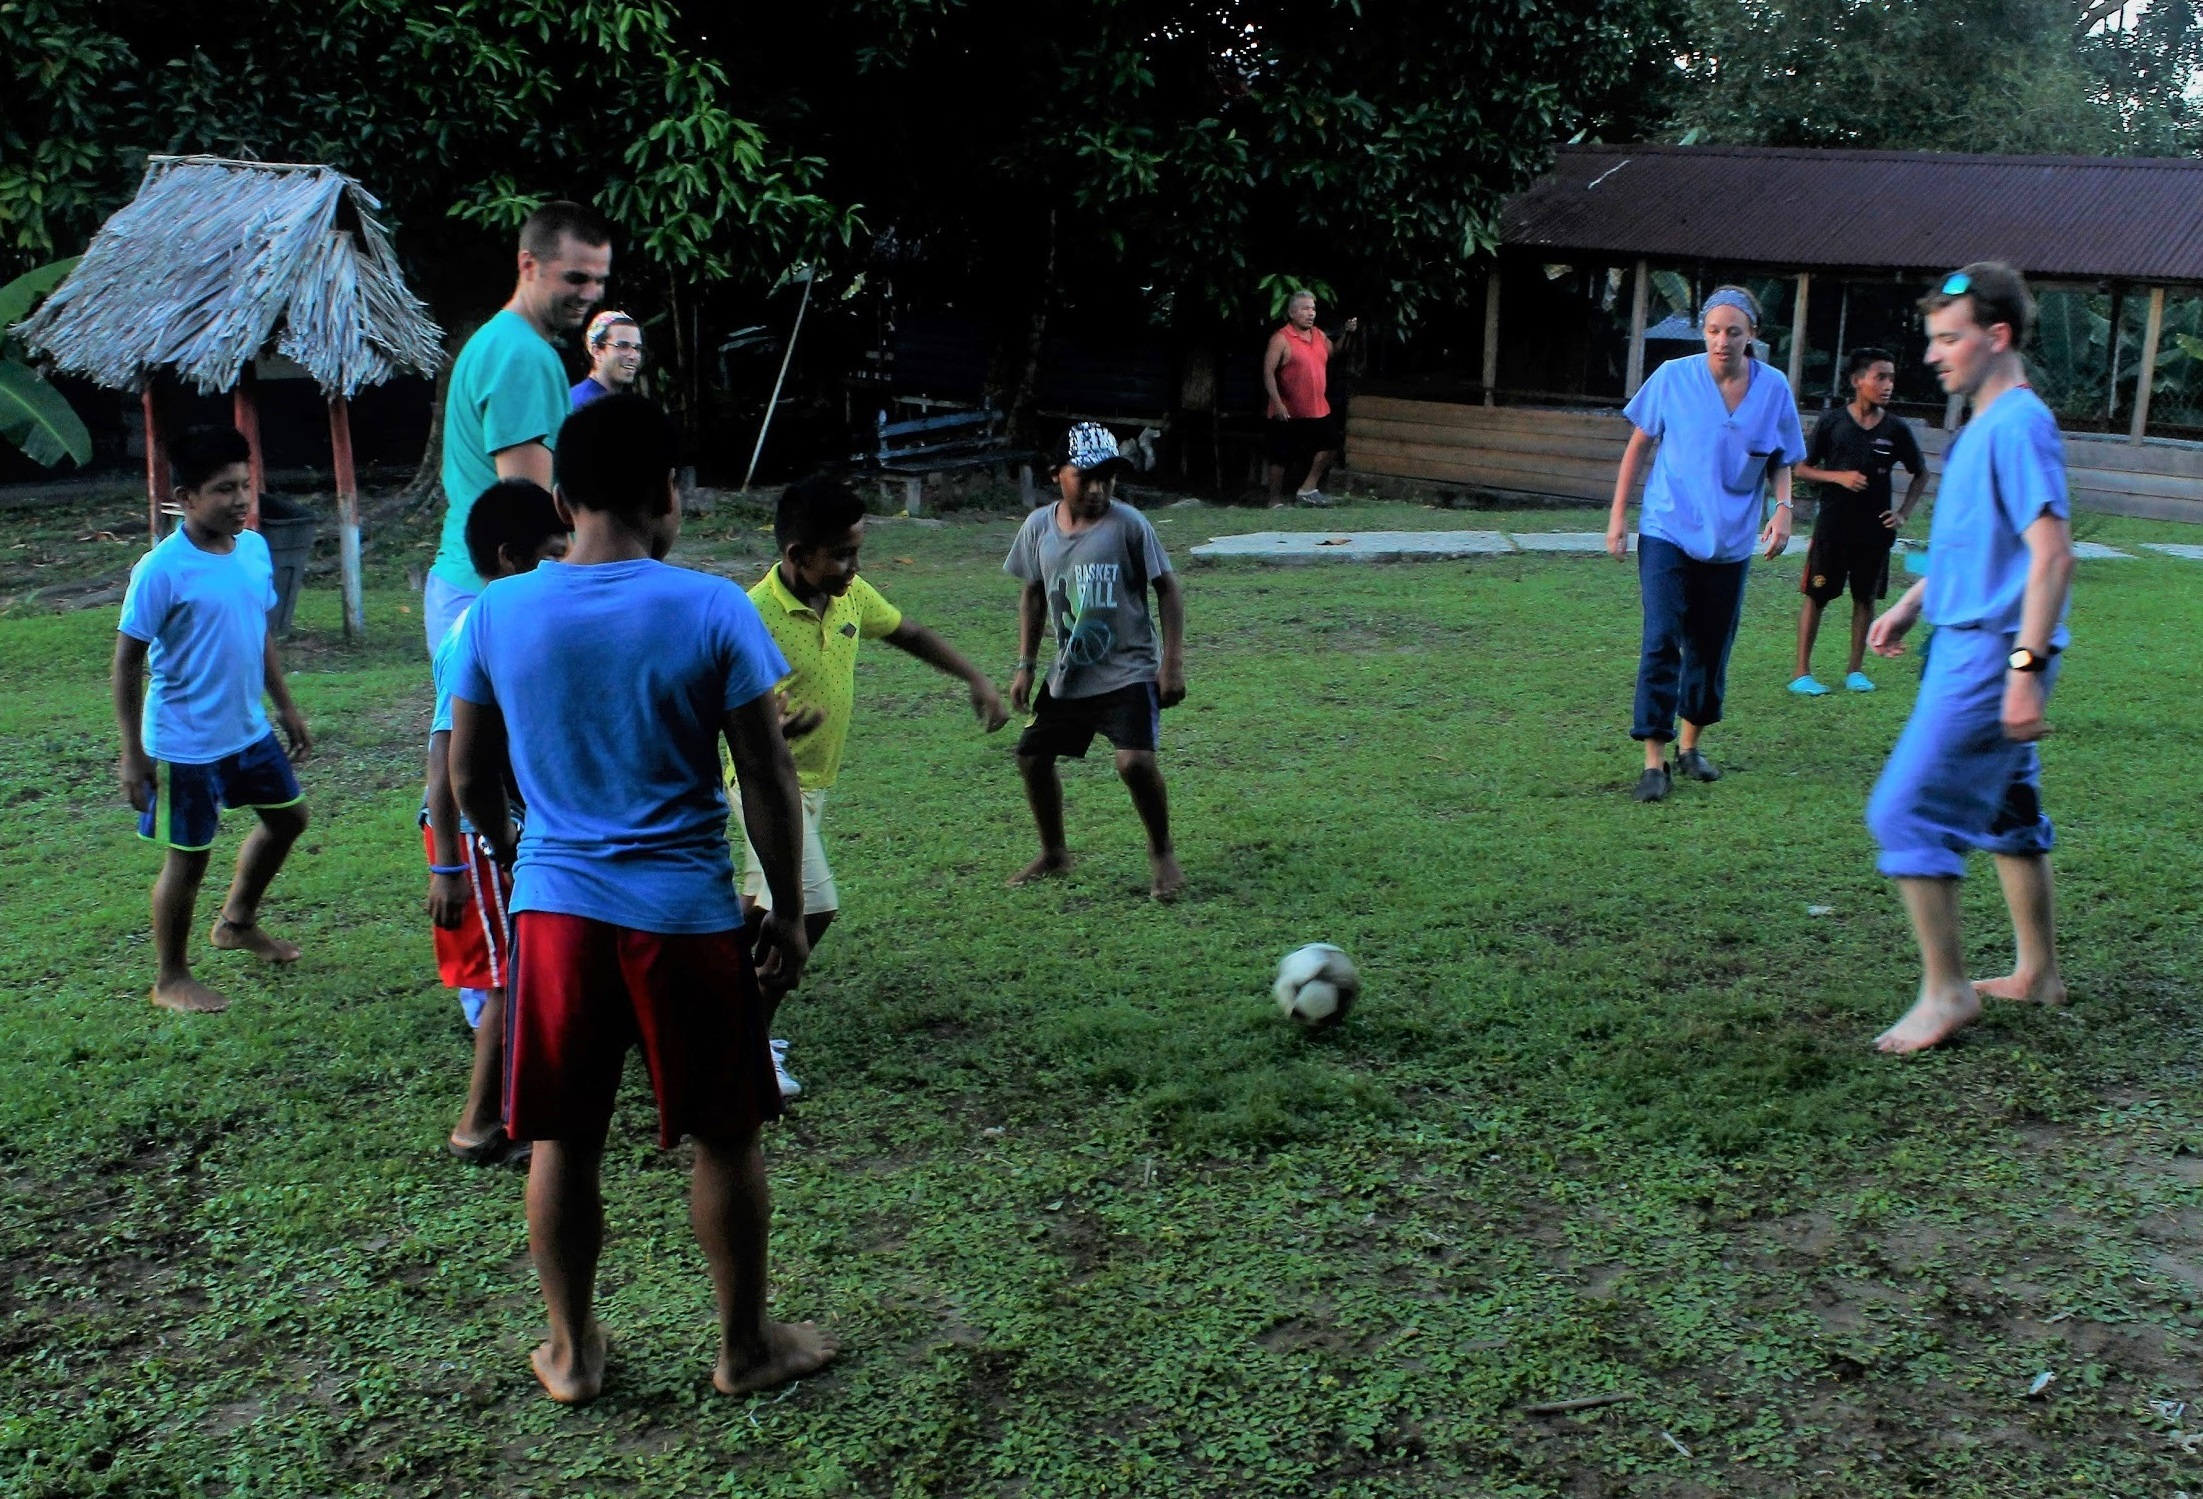 Medical students Maddie Fritsche, second from right, and Andrew Nevin, right, take a soccer break with boys the Bocas del Toro province. Five boys and a male medical student are in front of them. One boy is about to kick the ball. A thatched hut and a pavilion with a proof are behind them.